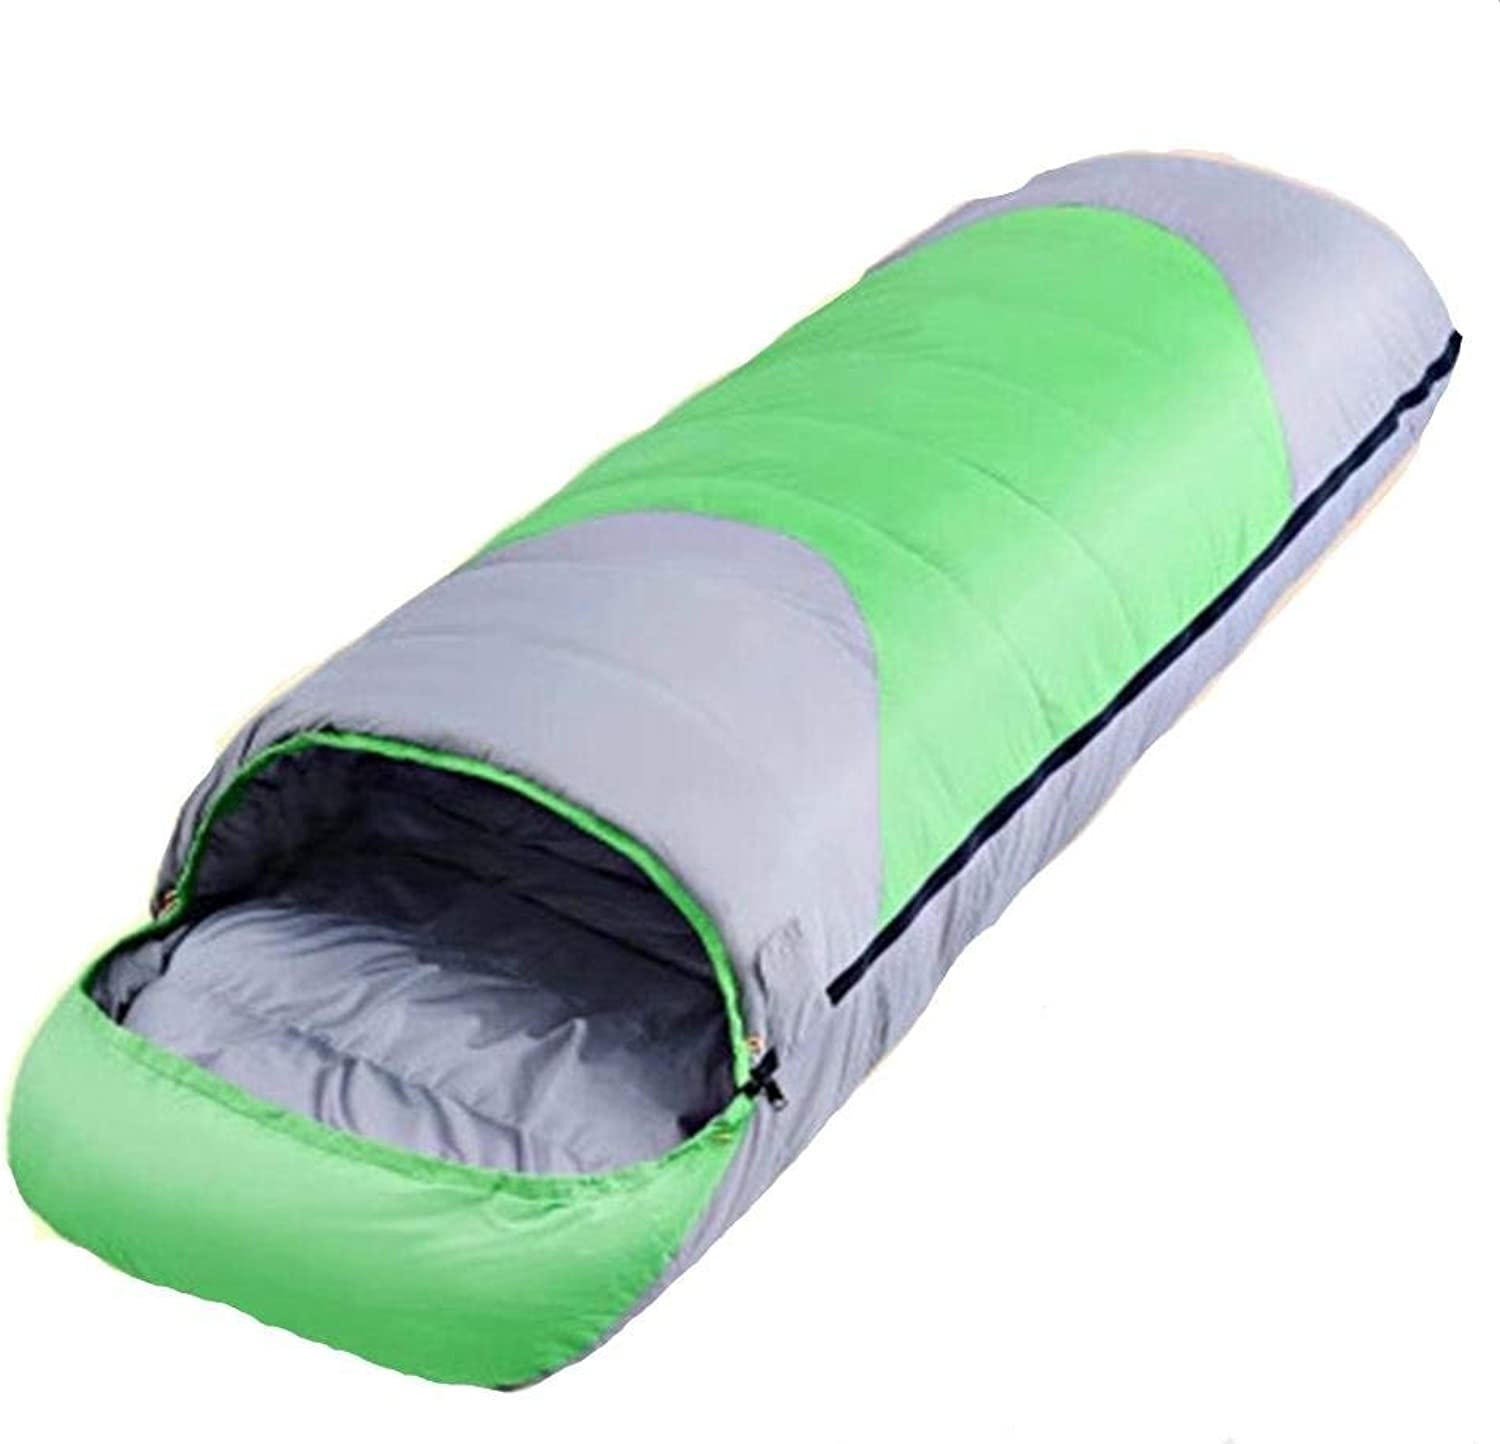 Unisex Outdoor Bag Camping Equipment Adult Sleeping Bag Windproof Warmth Practical Portable Leisure Soft Comfortable Lightweight Hiking Camping Sleeping Bag